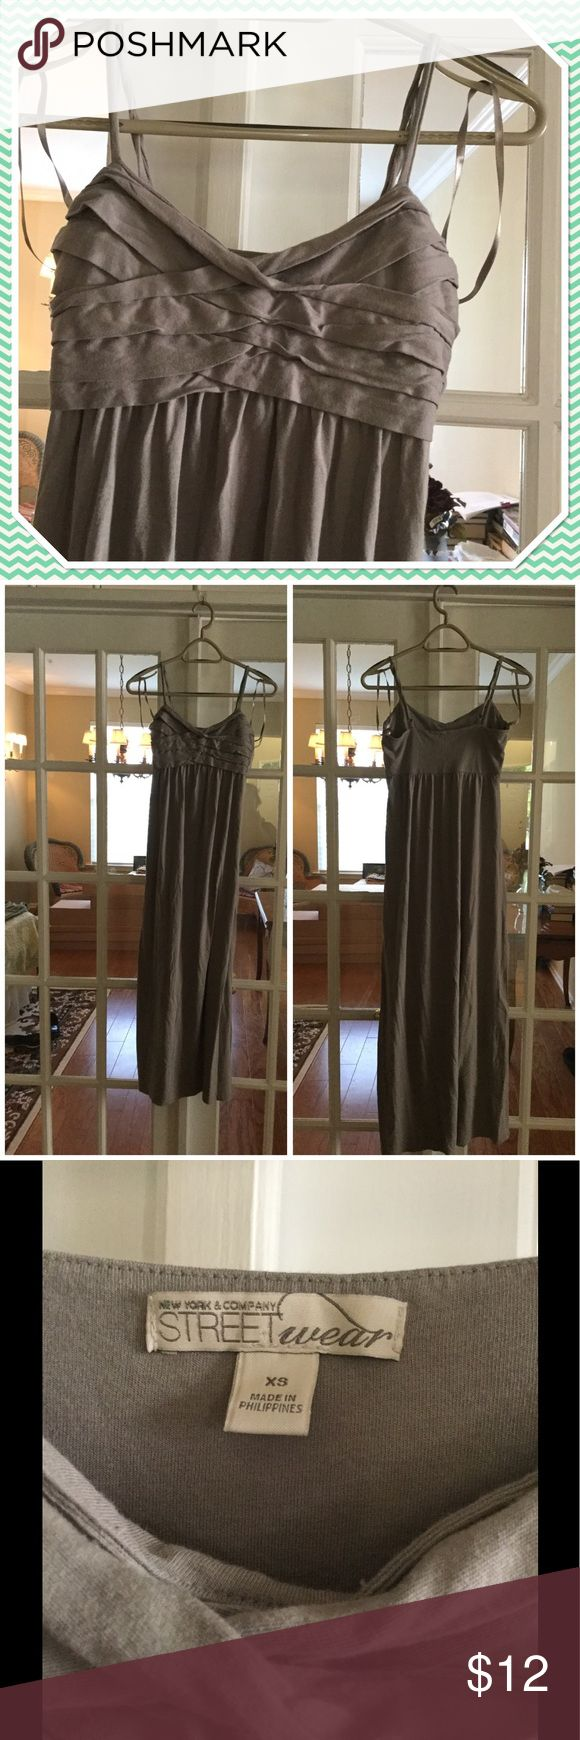 Grey Maxi Dress Gently Used light grey Maxi Dress. Machine wash cold. Tumble dry low - cool iron if needed. 60% Cotton & 40% Modal. For all reasonable offers, please use offer option. New York & Company Dresses Maxi